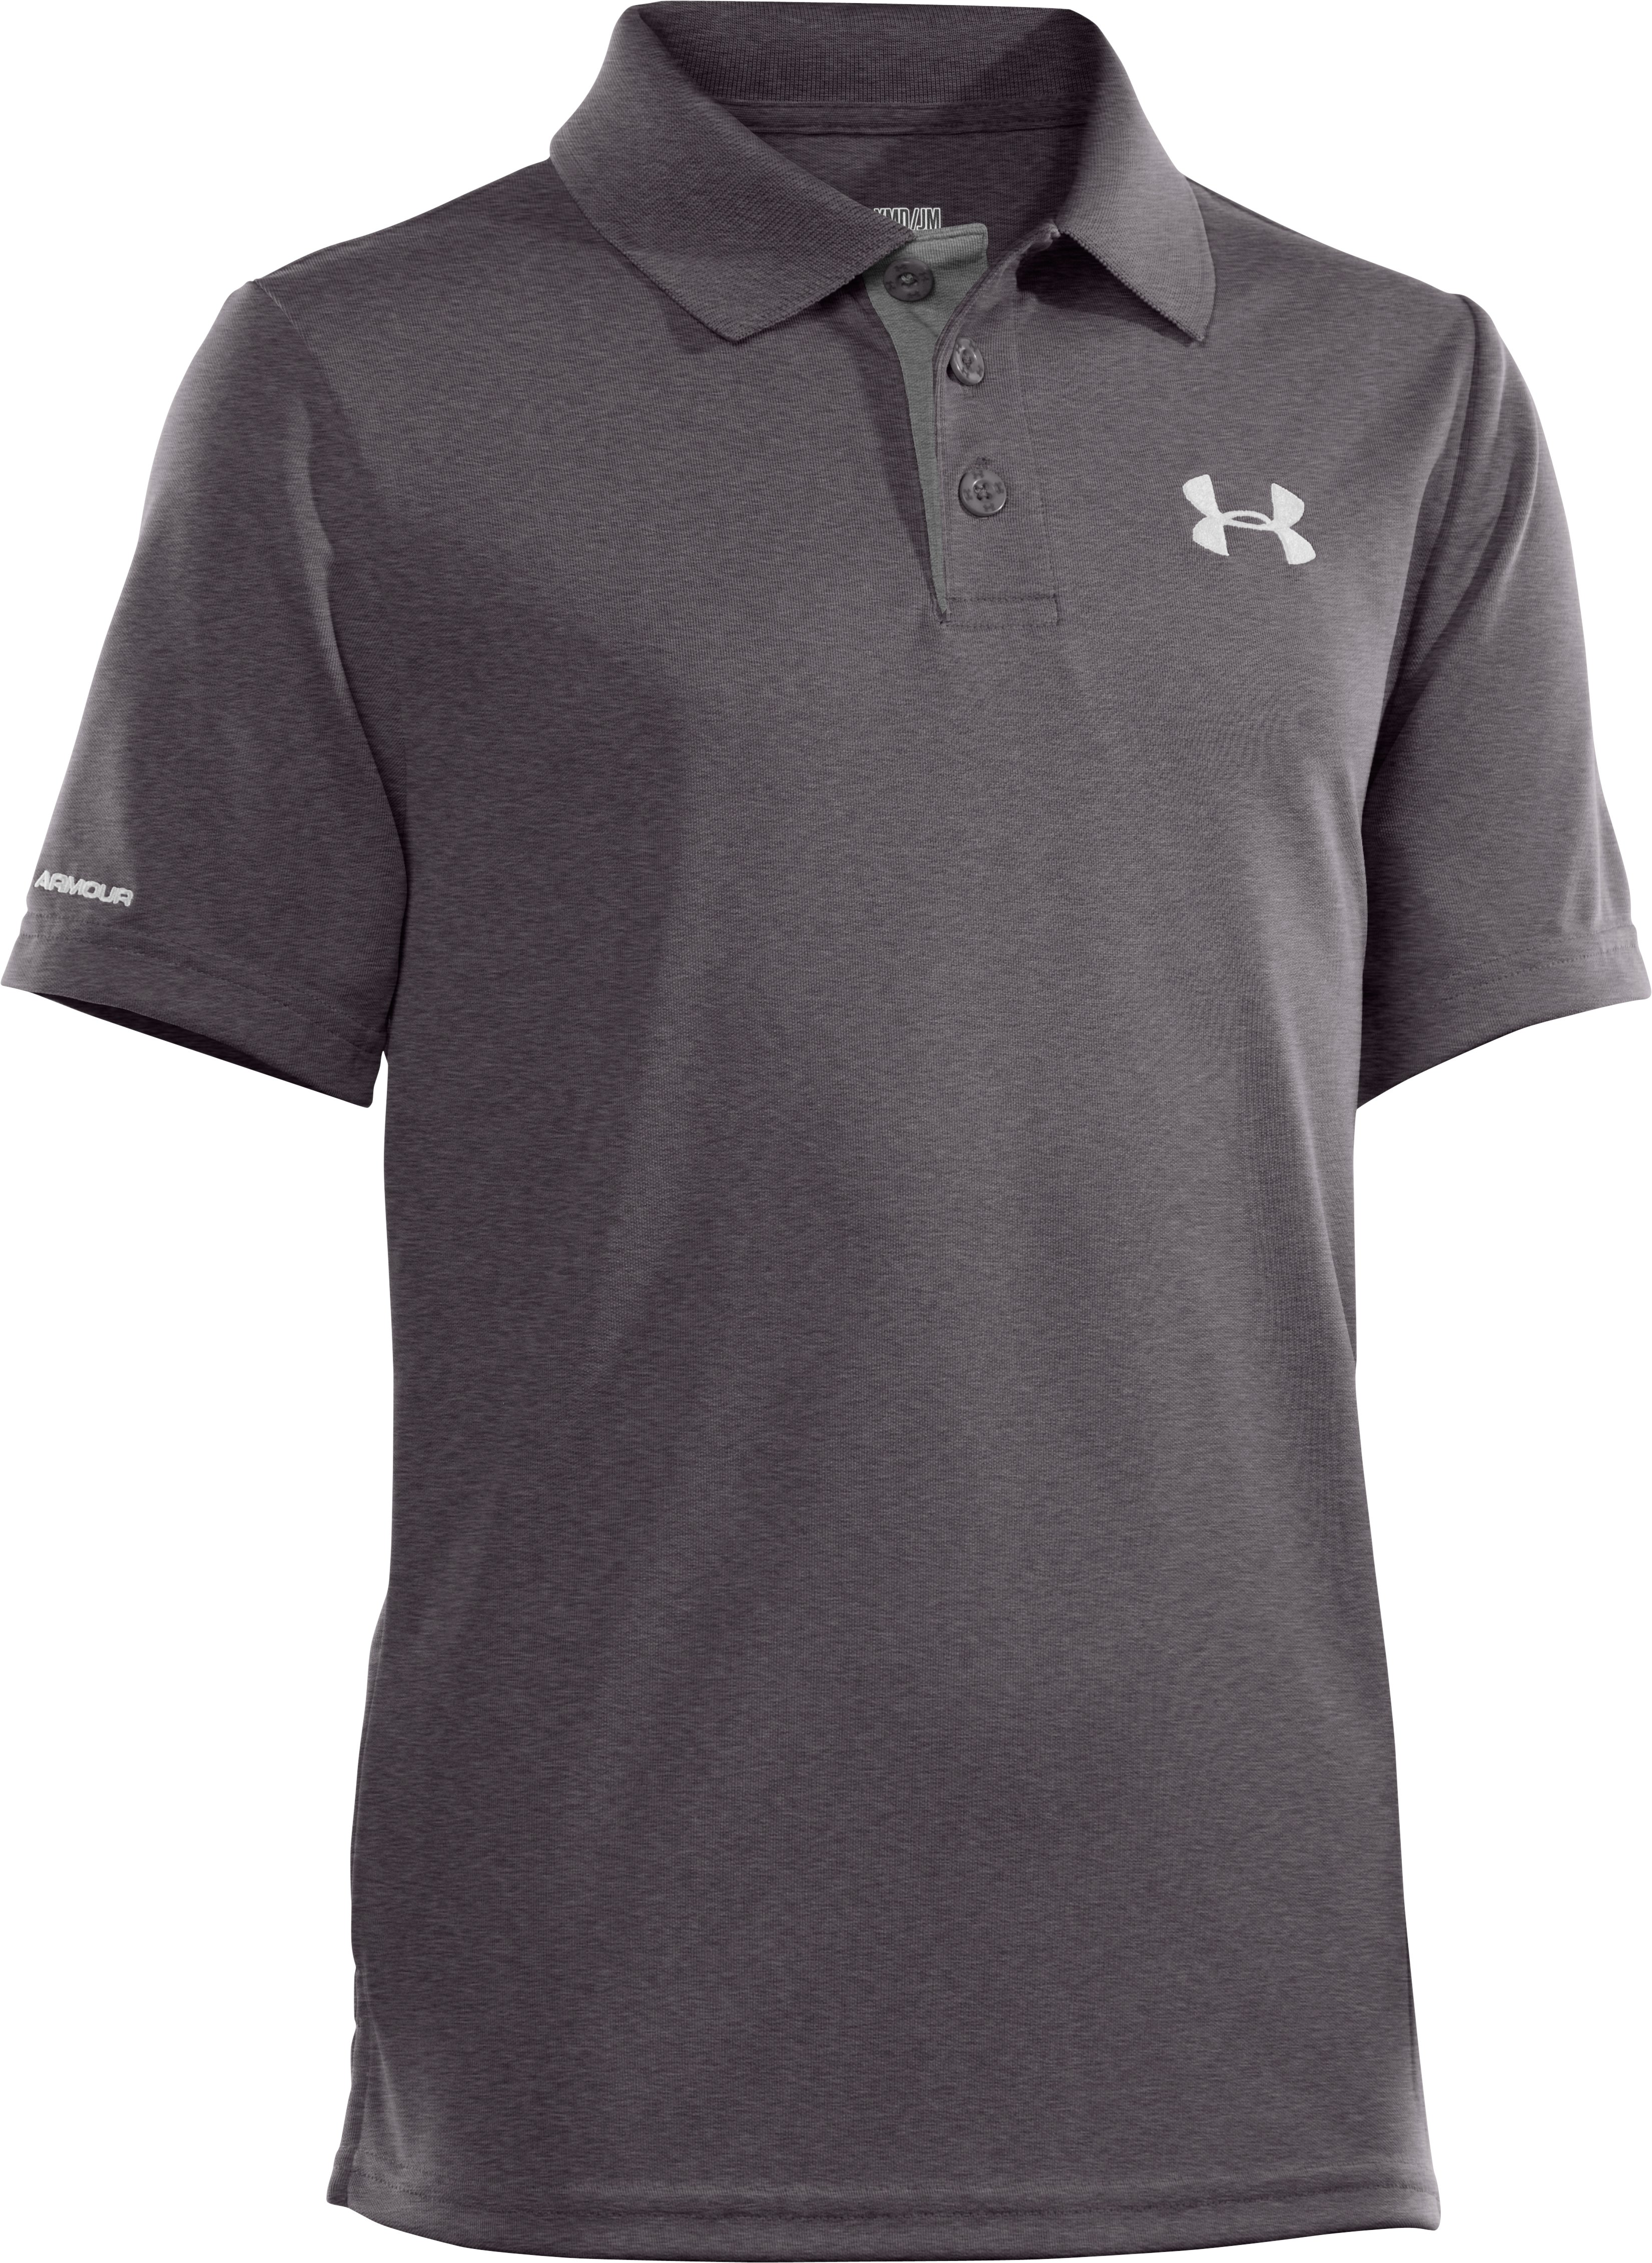 Boys' UA Match Play Polo, Carbon Heather